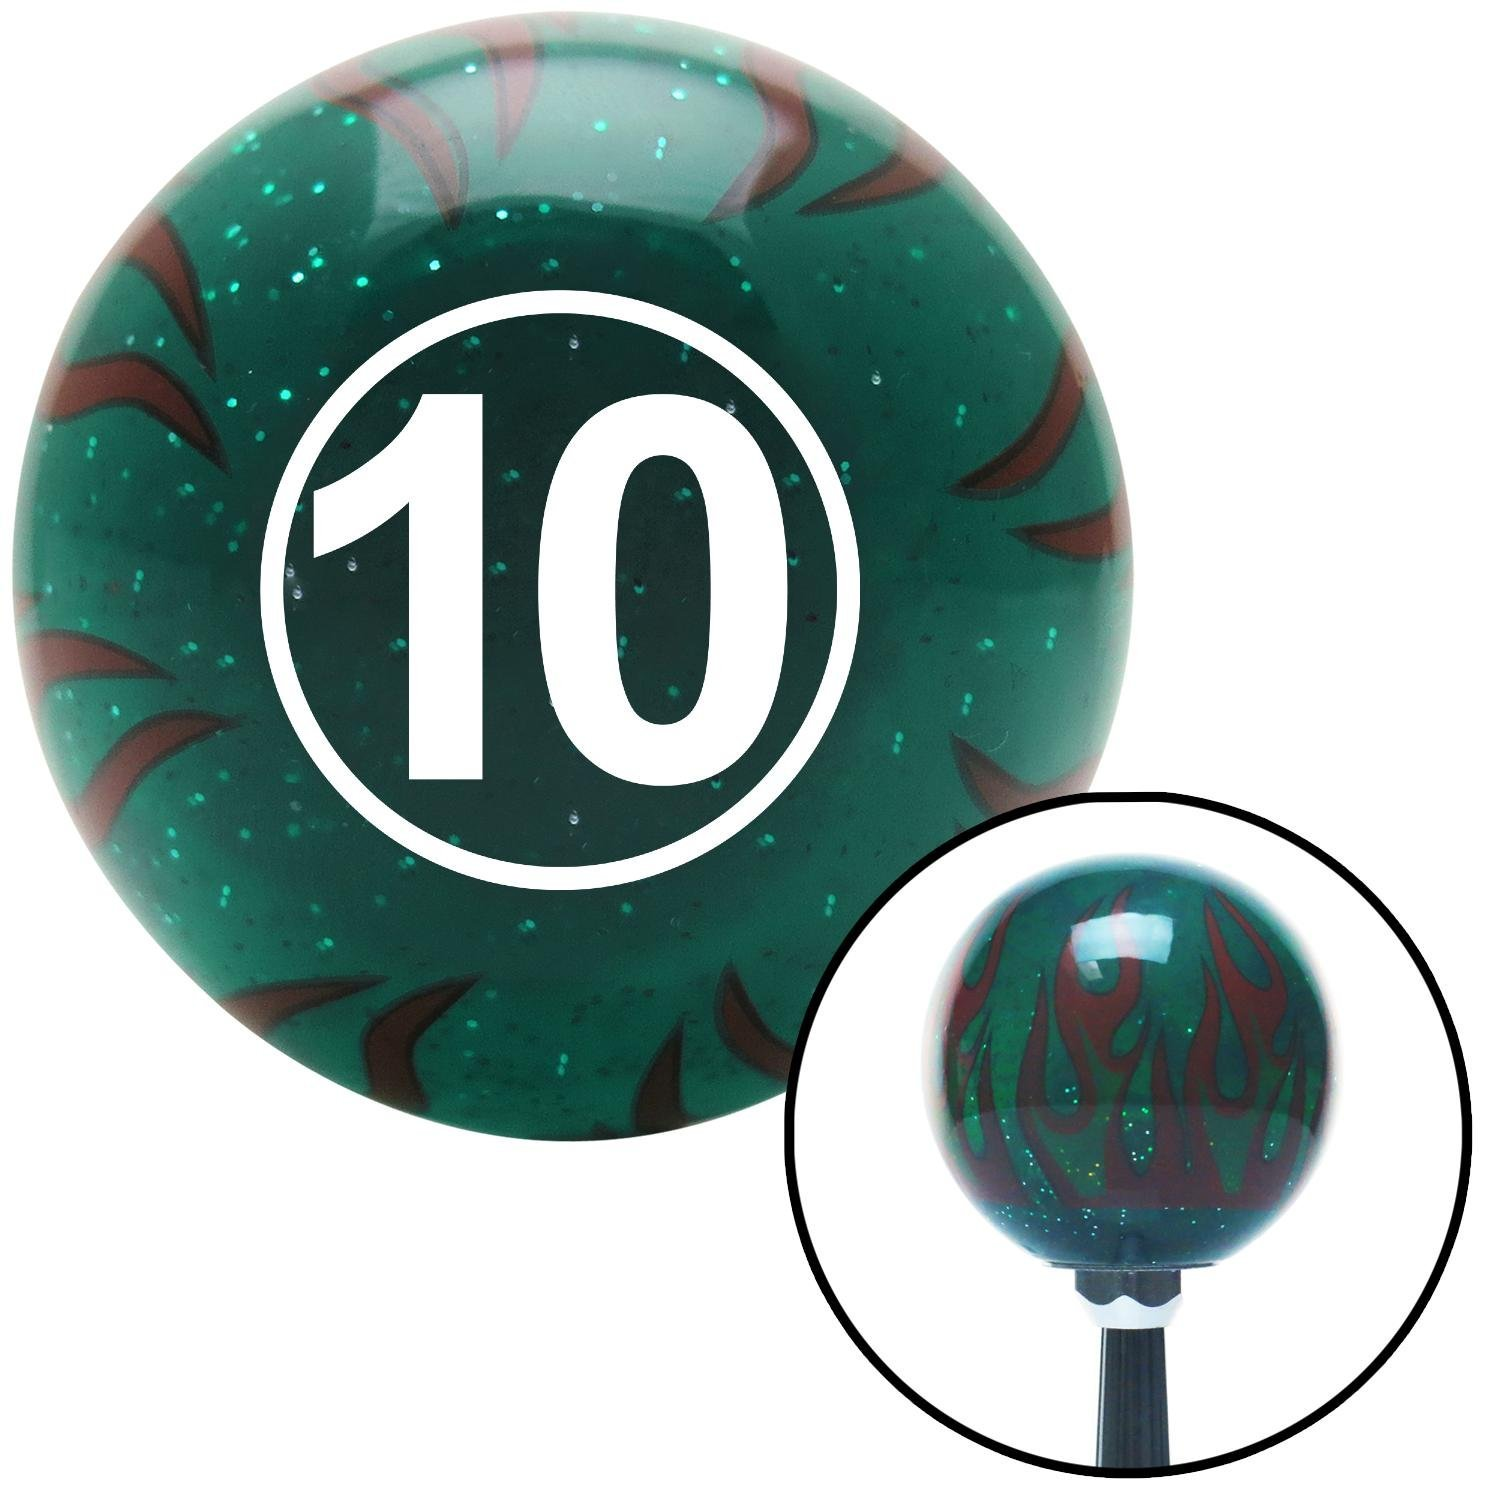 American Shifter 261133 Green Flame Metal Flake Shift Knob with M16 x 1.5 Insert White Ball #10